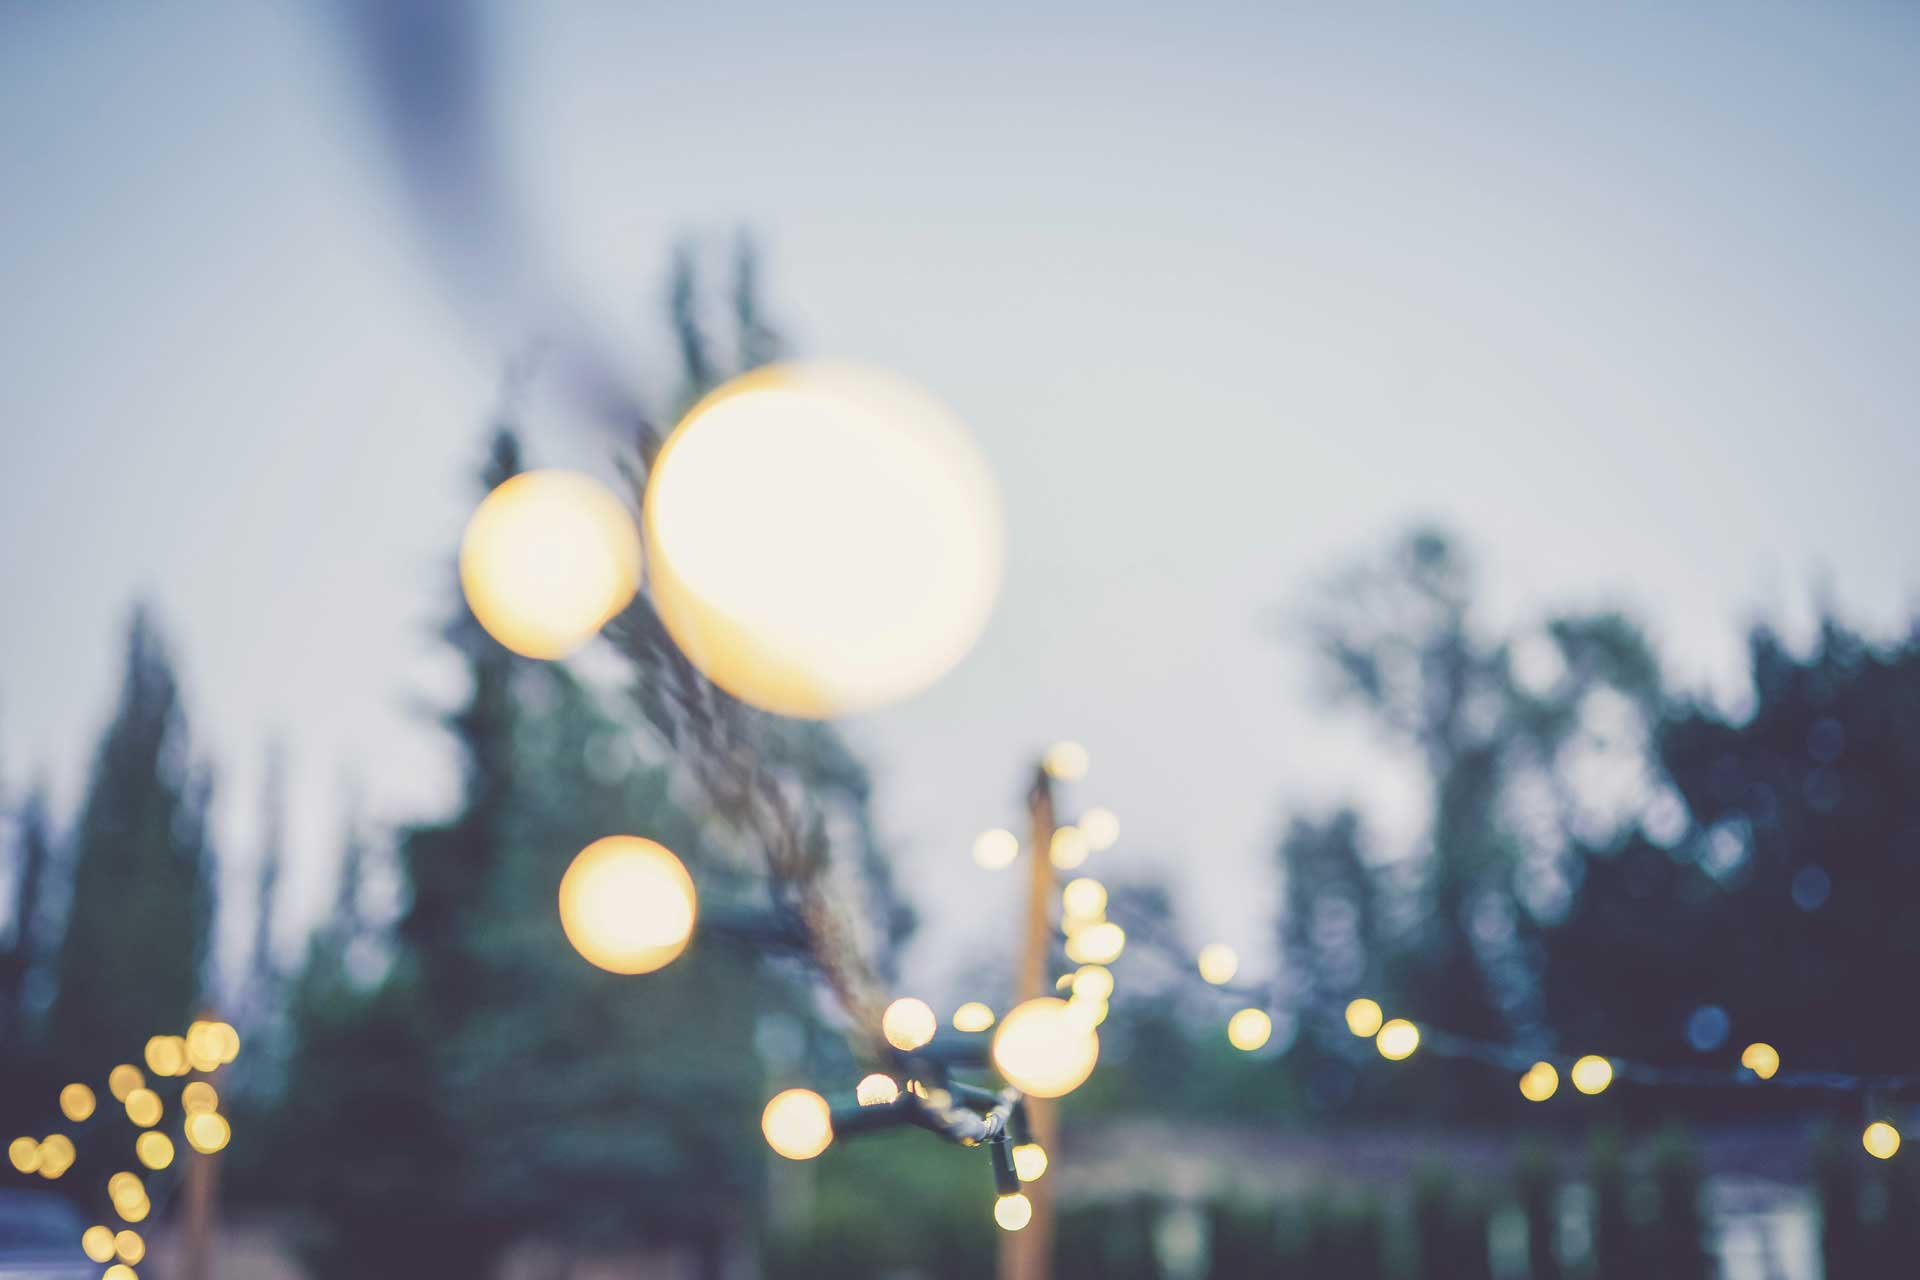 Bokeh effect image of lights in a park